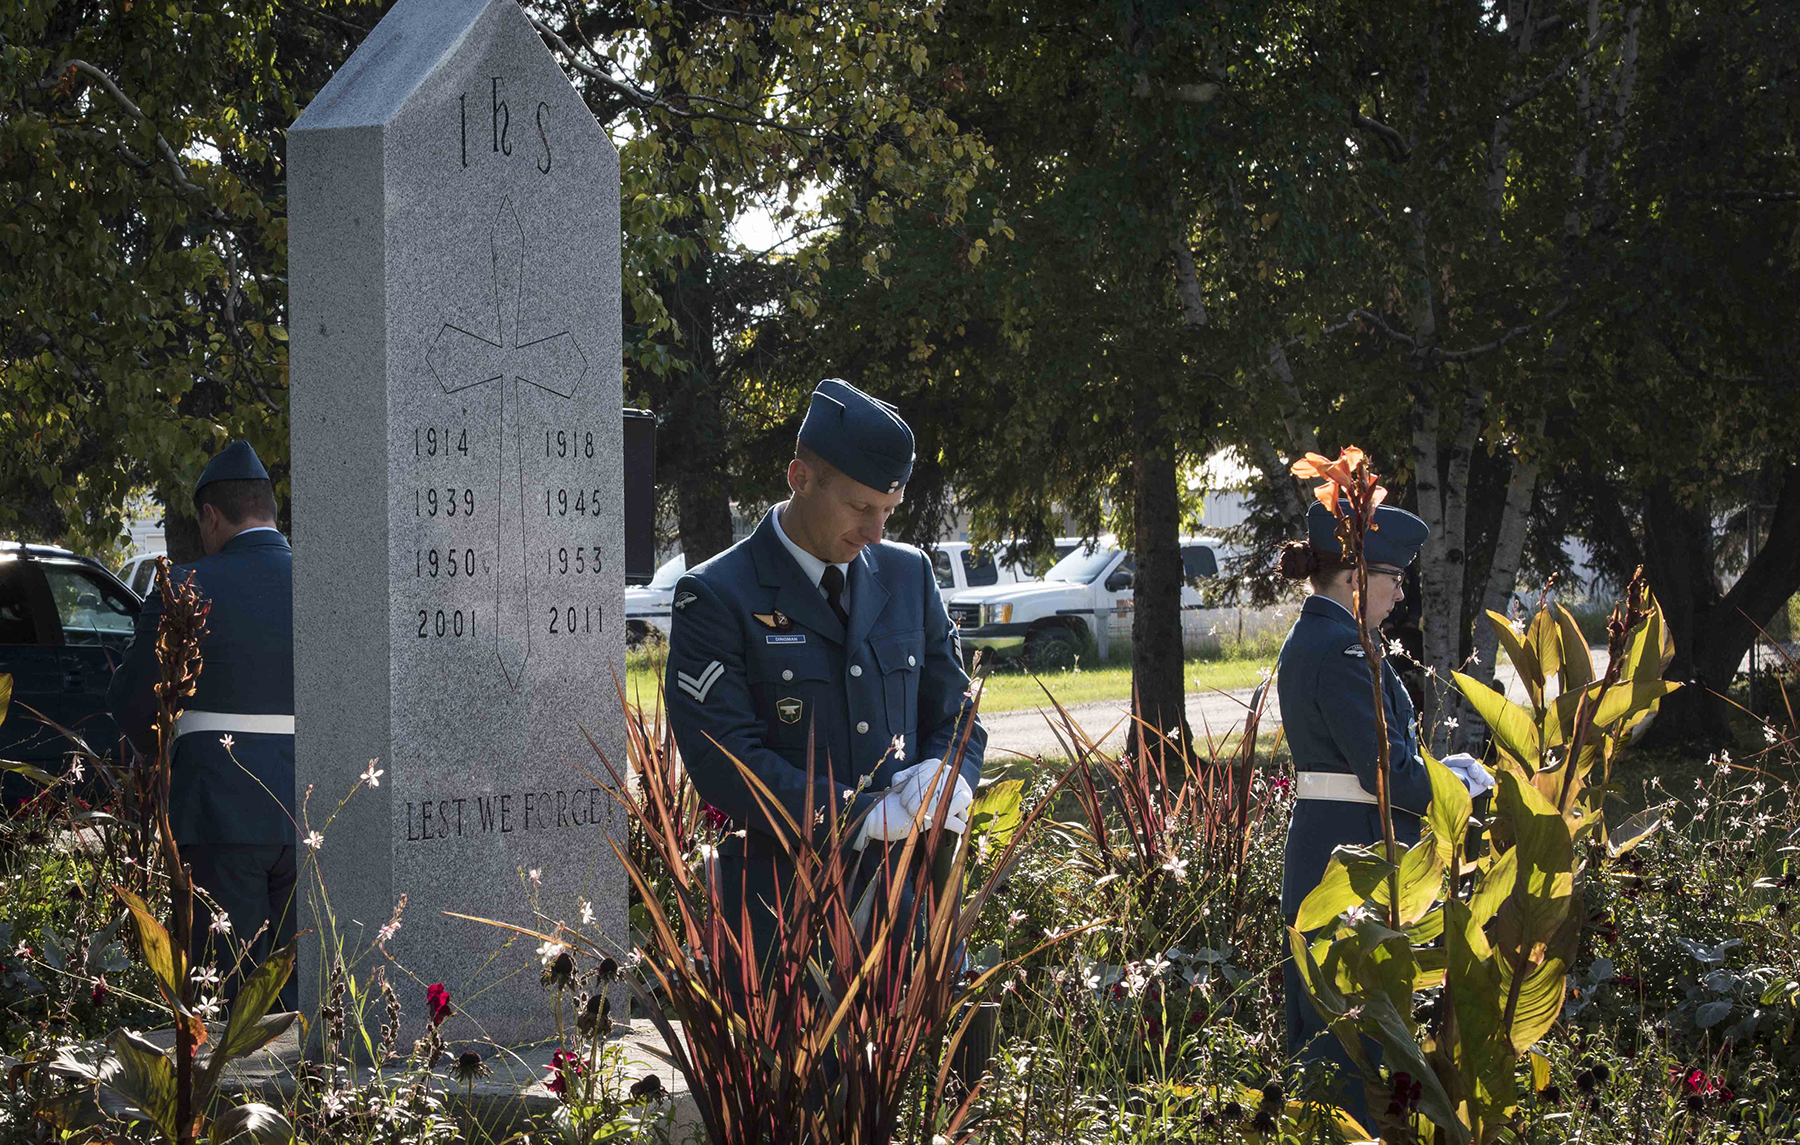 Corporal Alexandre Dingman (centre) and other 4 Wing Cold Lake sentries stand at rest with arms reversed in Veterans Memorial Park during the September 17, 2017, ceremony in Cold Lake, Alberta, marking the 77th anniversary of the Battle of Britain. PHOTO: Aviator Caitlin Paterson, CK09-2017-0821-008